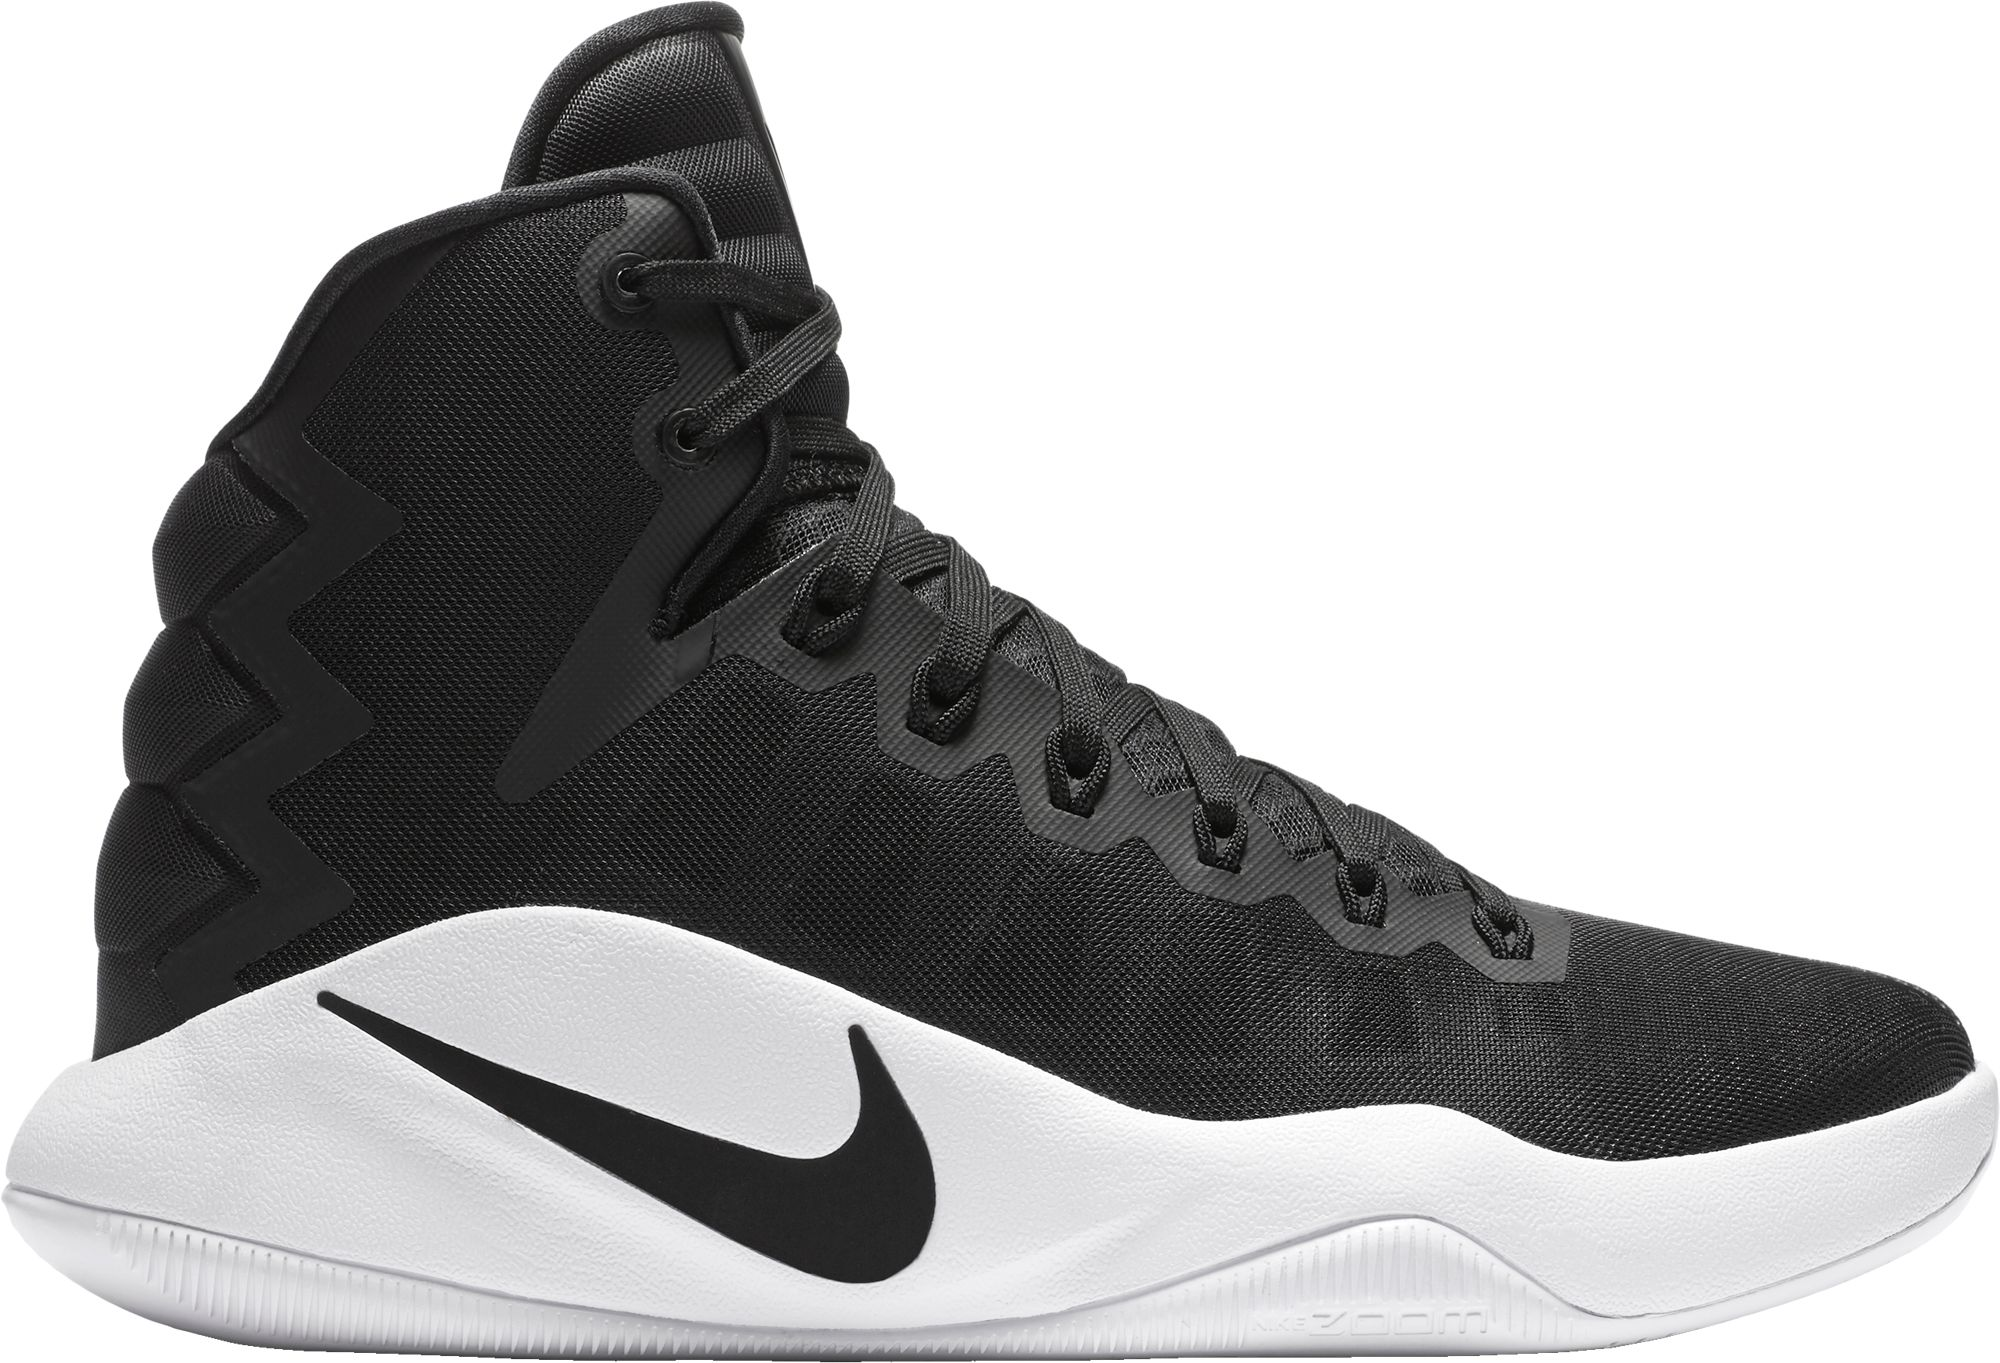 Cheap Nike Basketball Shoes Under